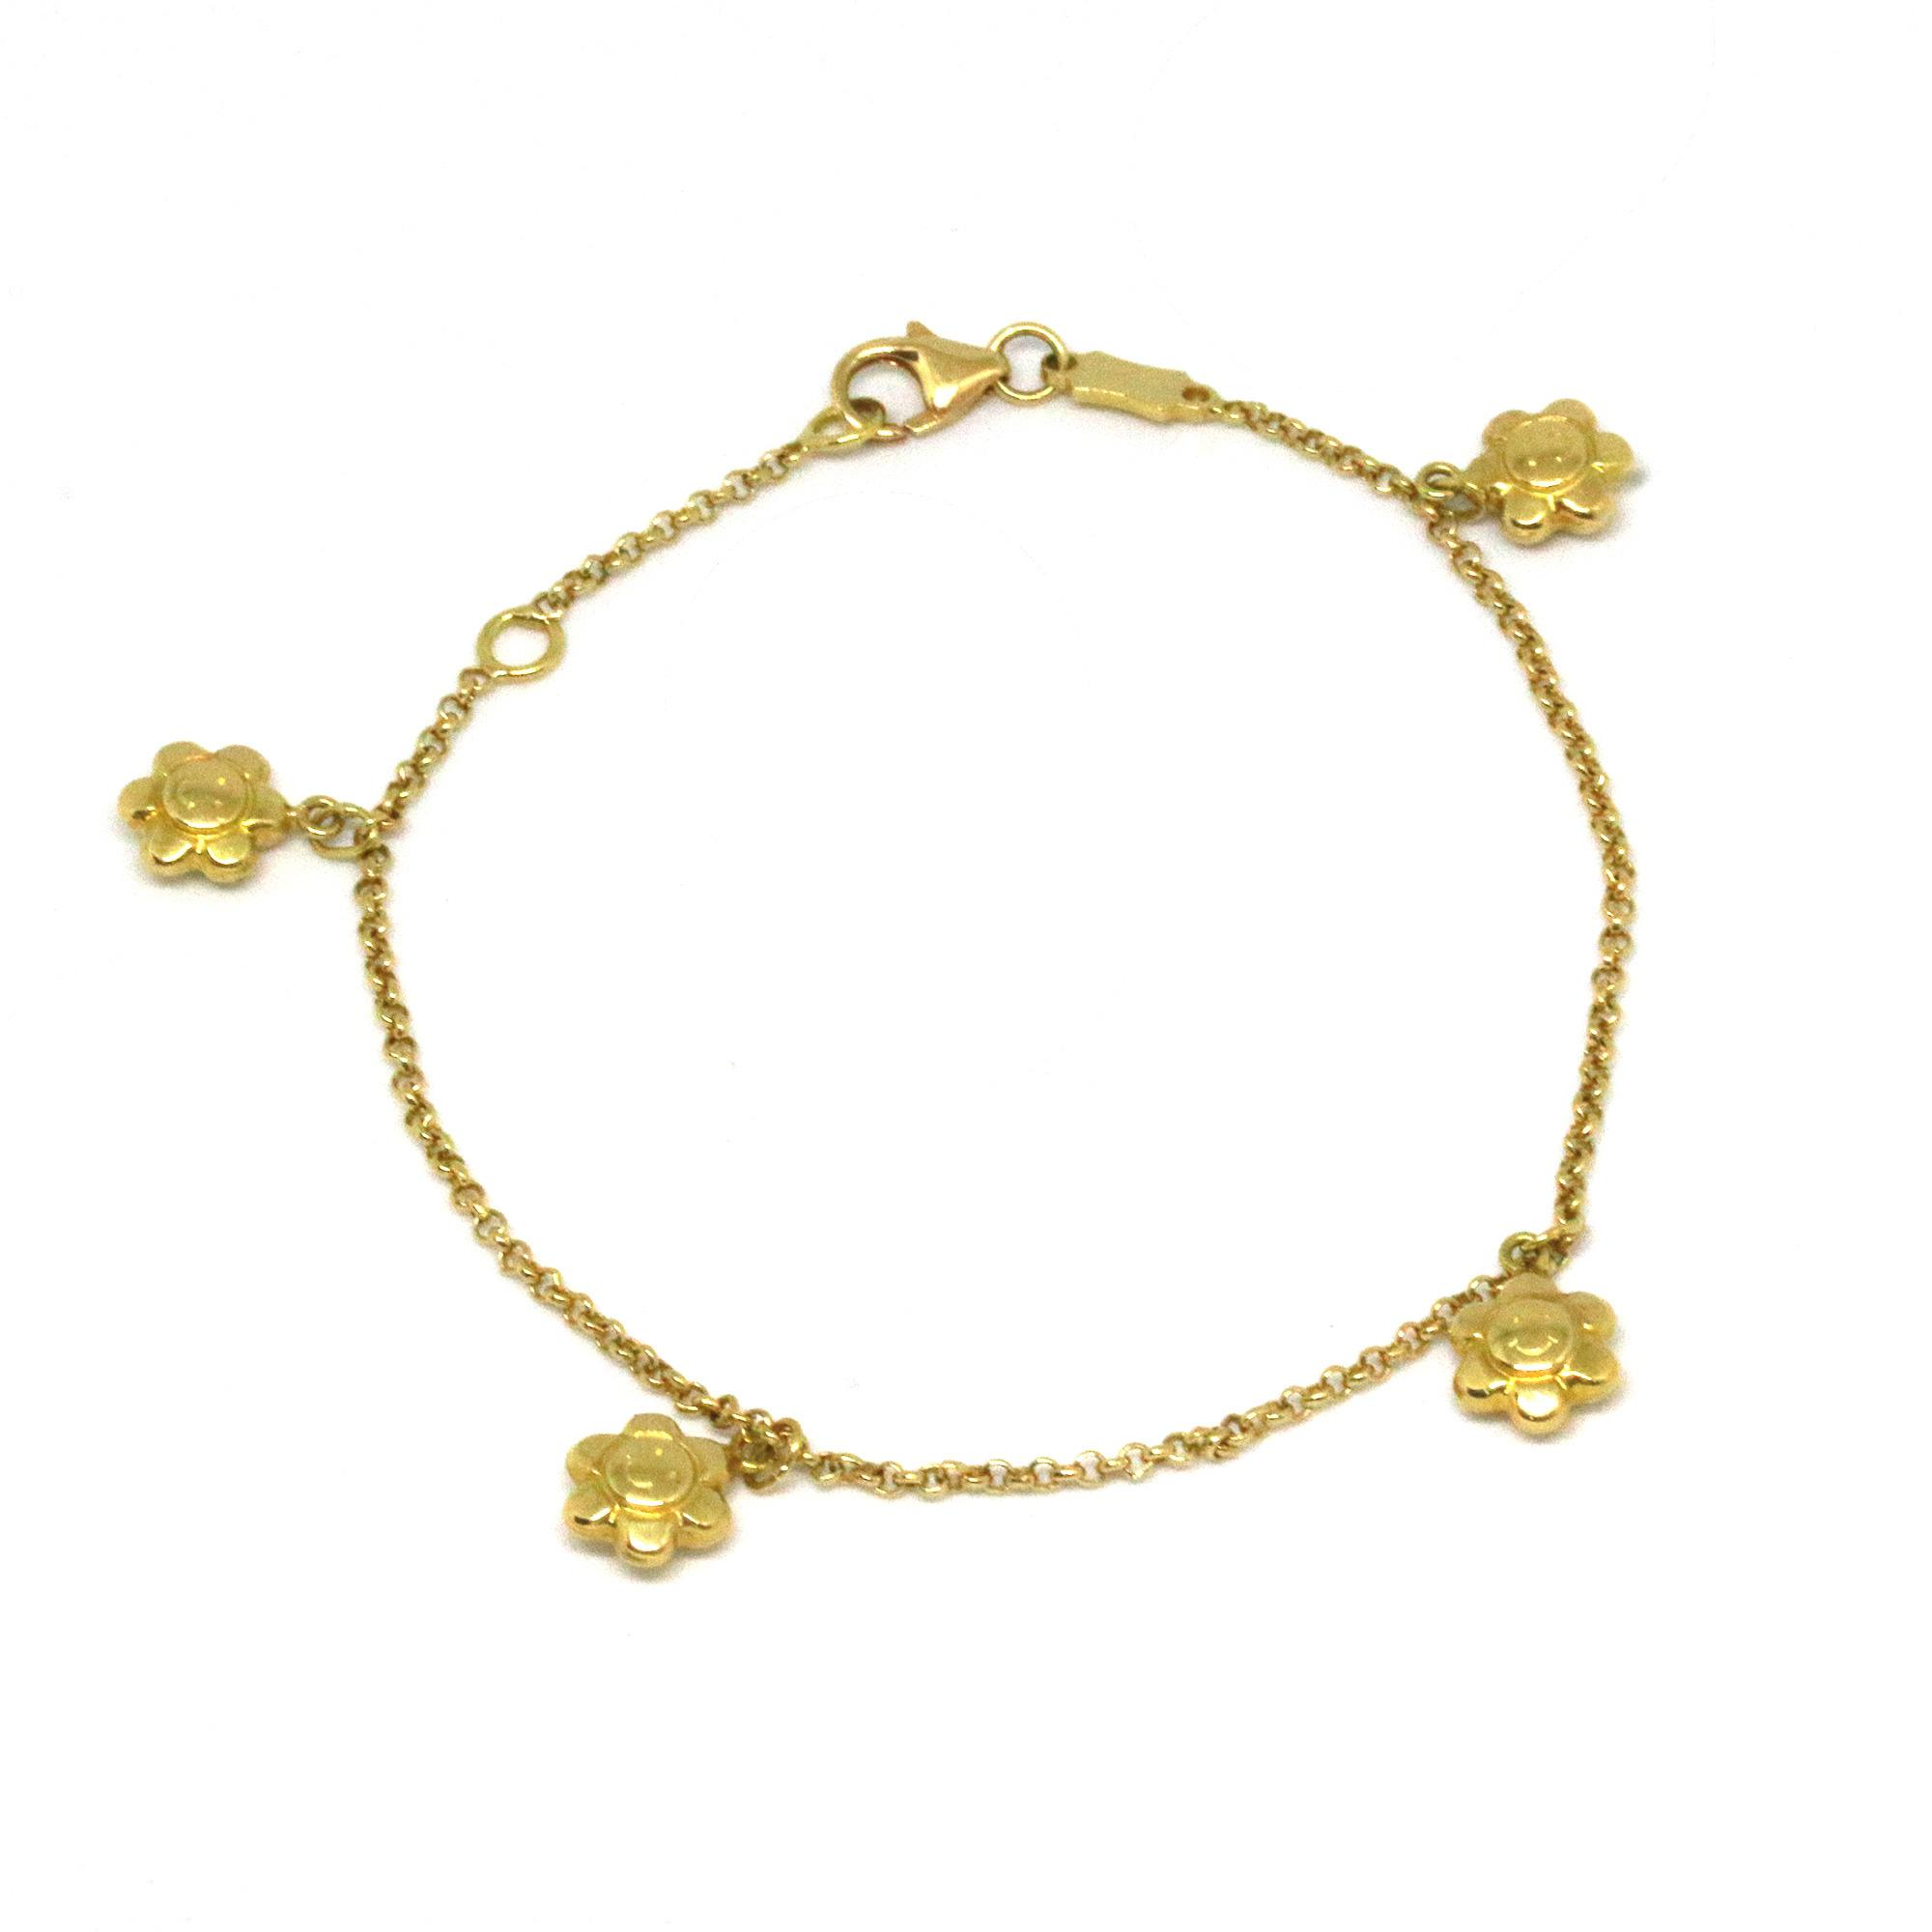 ltd uk from bangles bracelet anklet image pearl gold chain jewellers bracelets and avanti womens